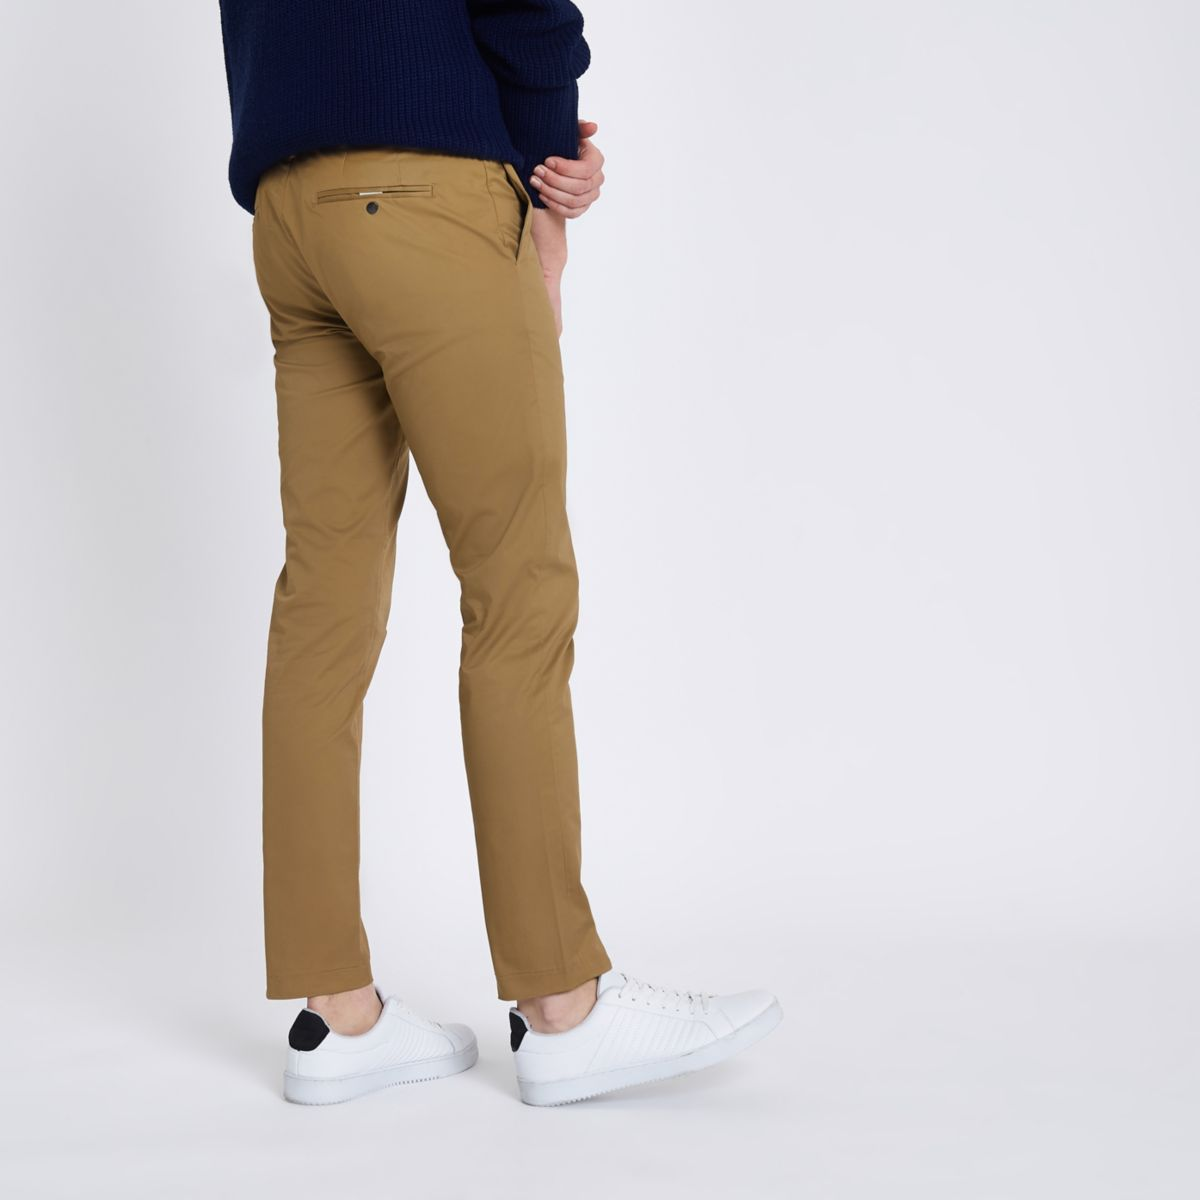 Tan Skinny Chino Trousers by River Island